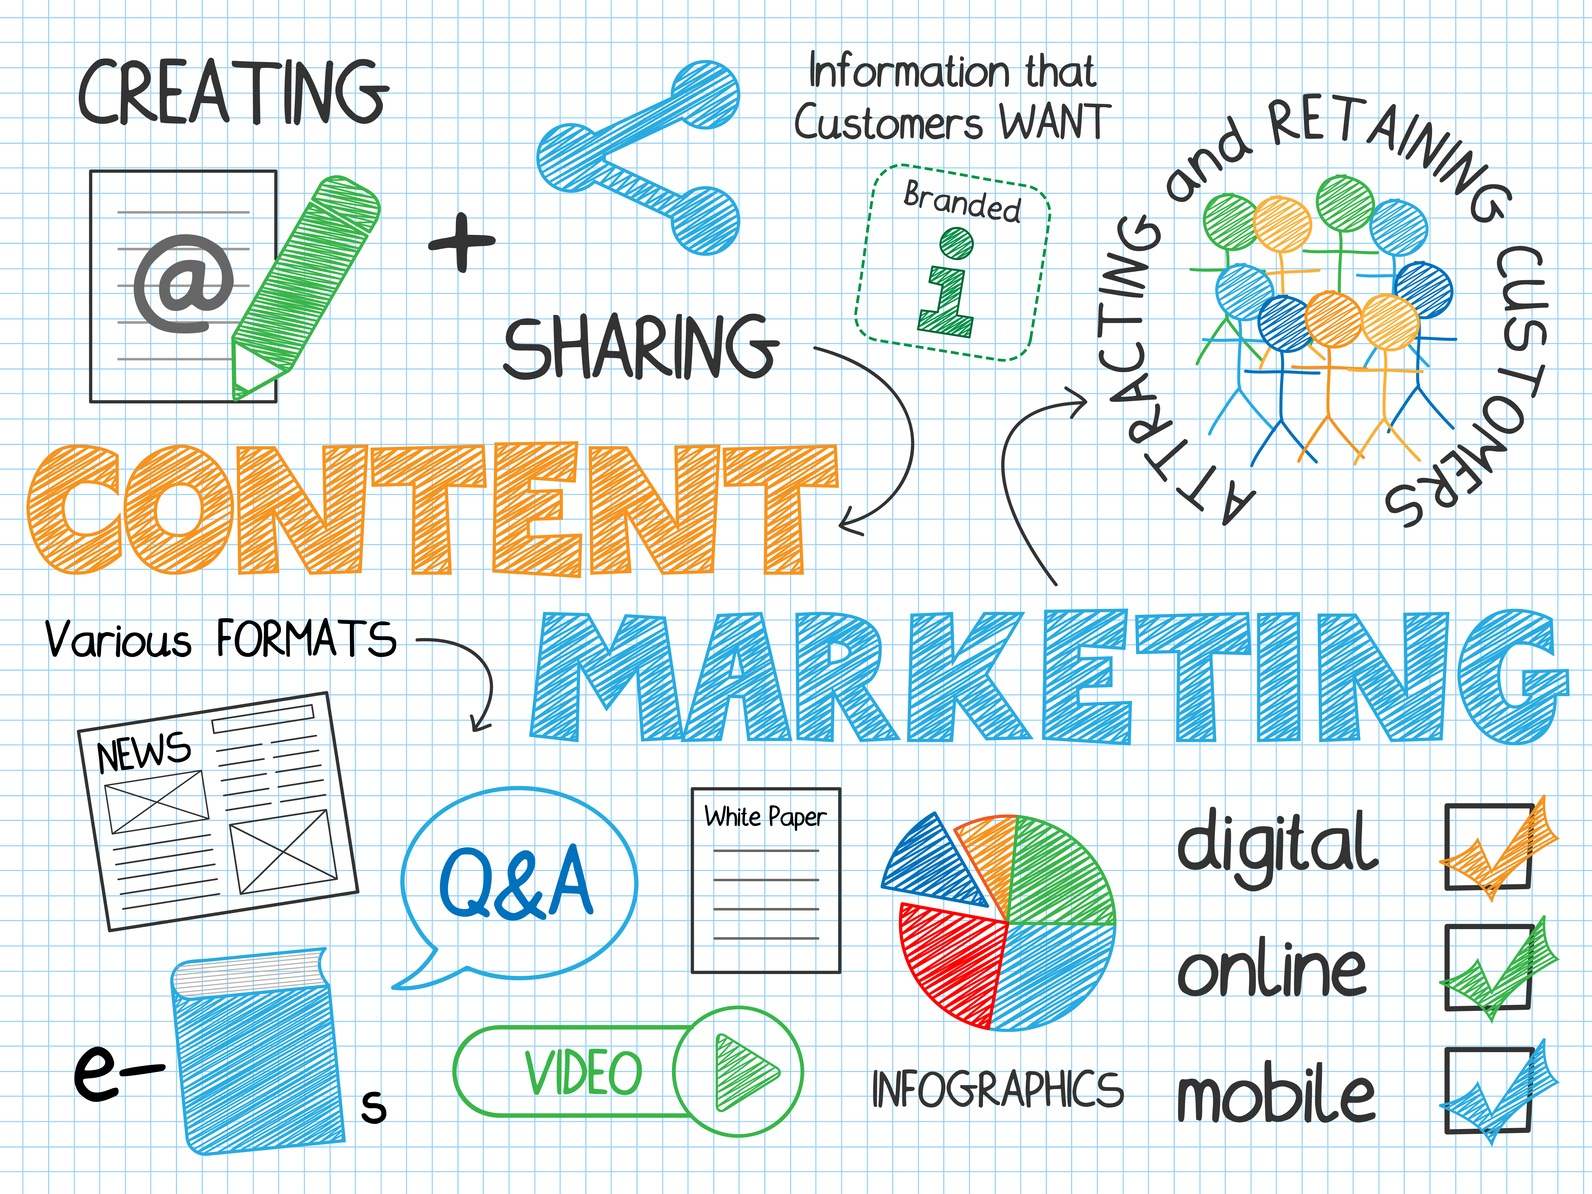 5 Downloadable Assets to Kick Off Your Next Inbound Marketing Campaign